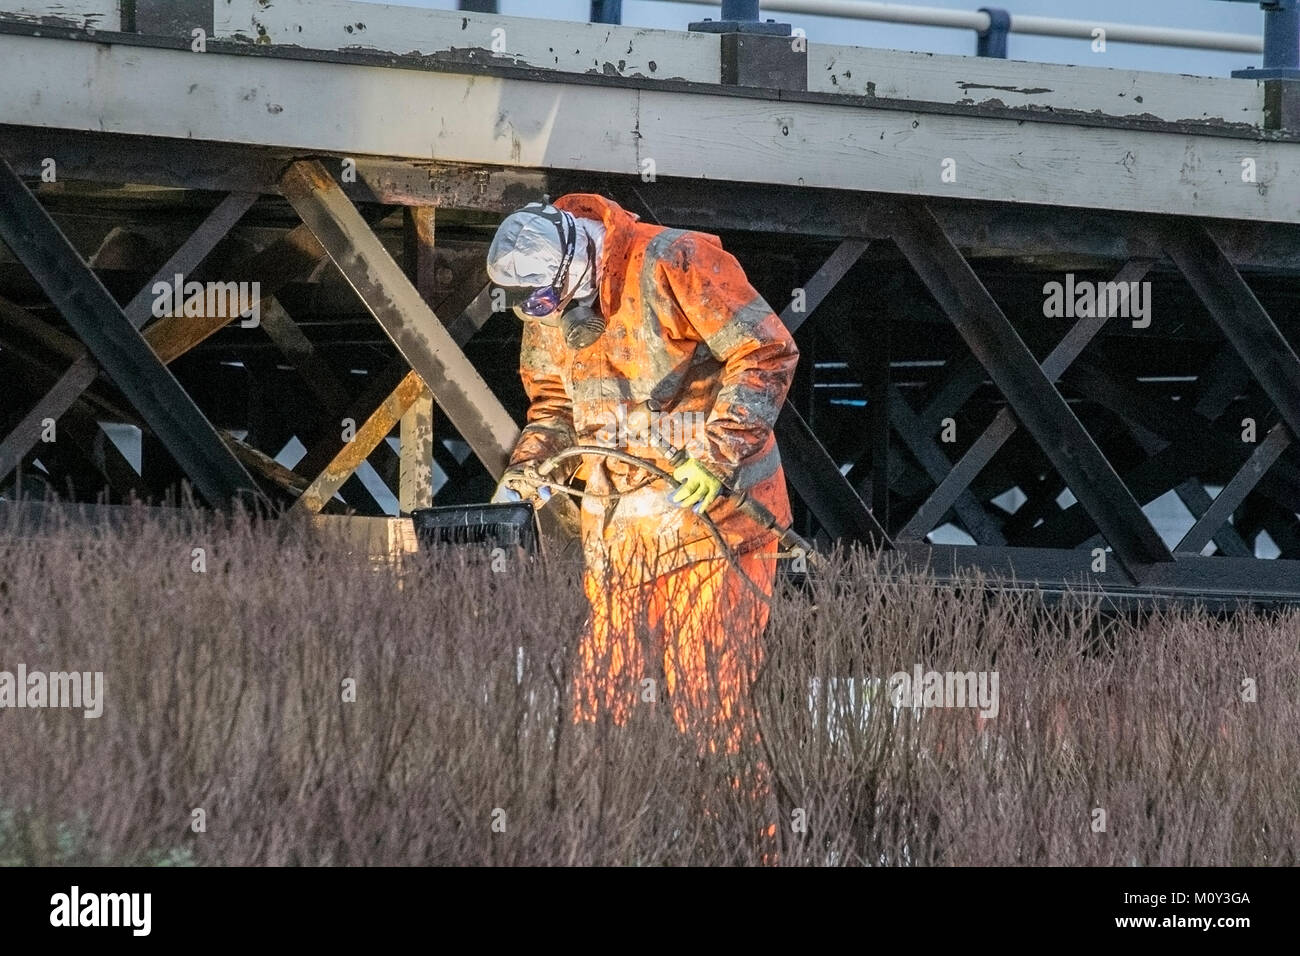 A metal fabricator welding the iron stanchions during renovation work on Southport Pier in Merseyside, UK. - Stock Image